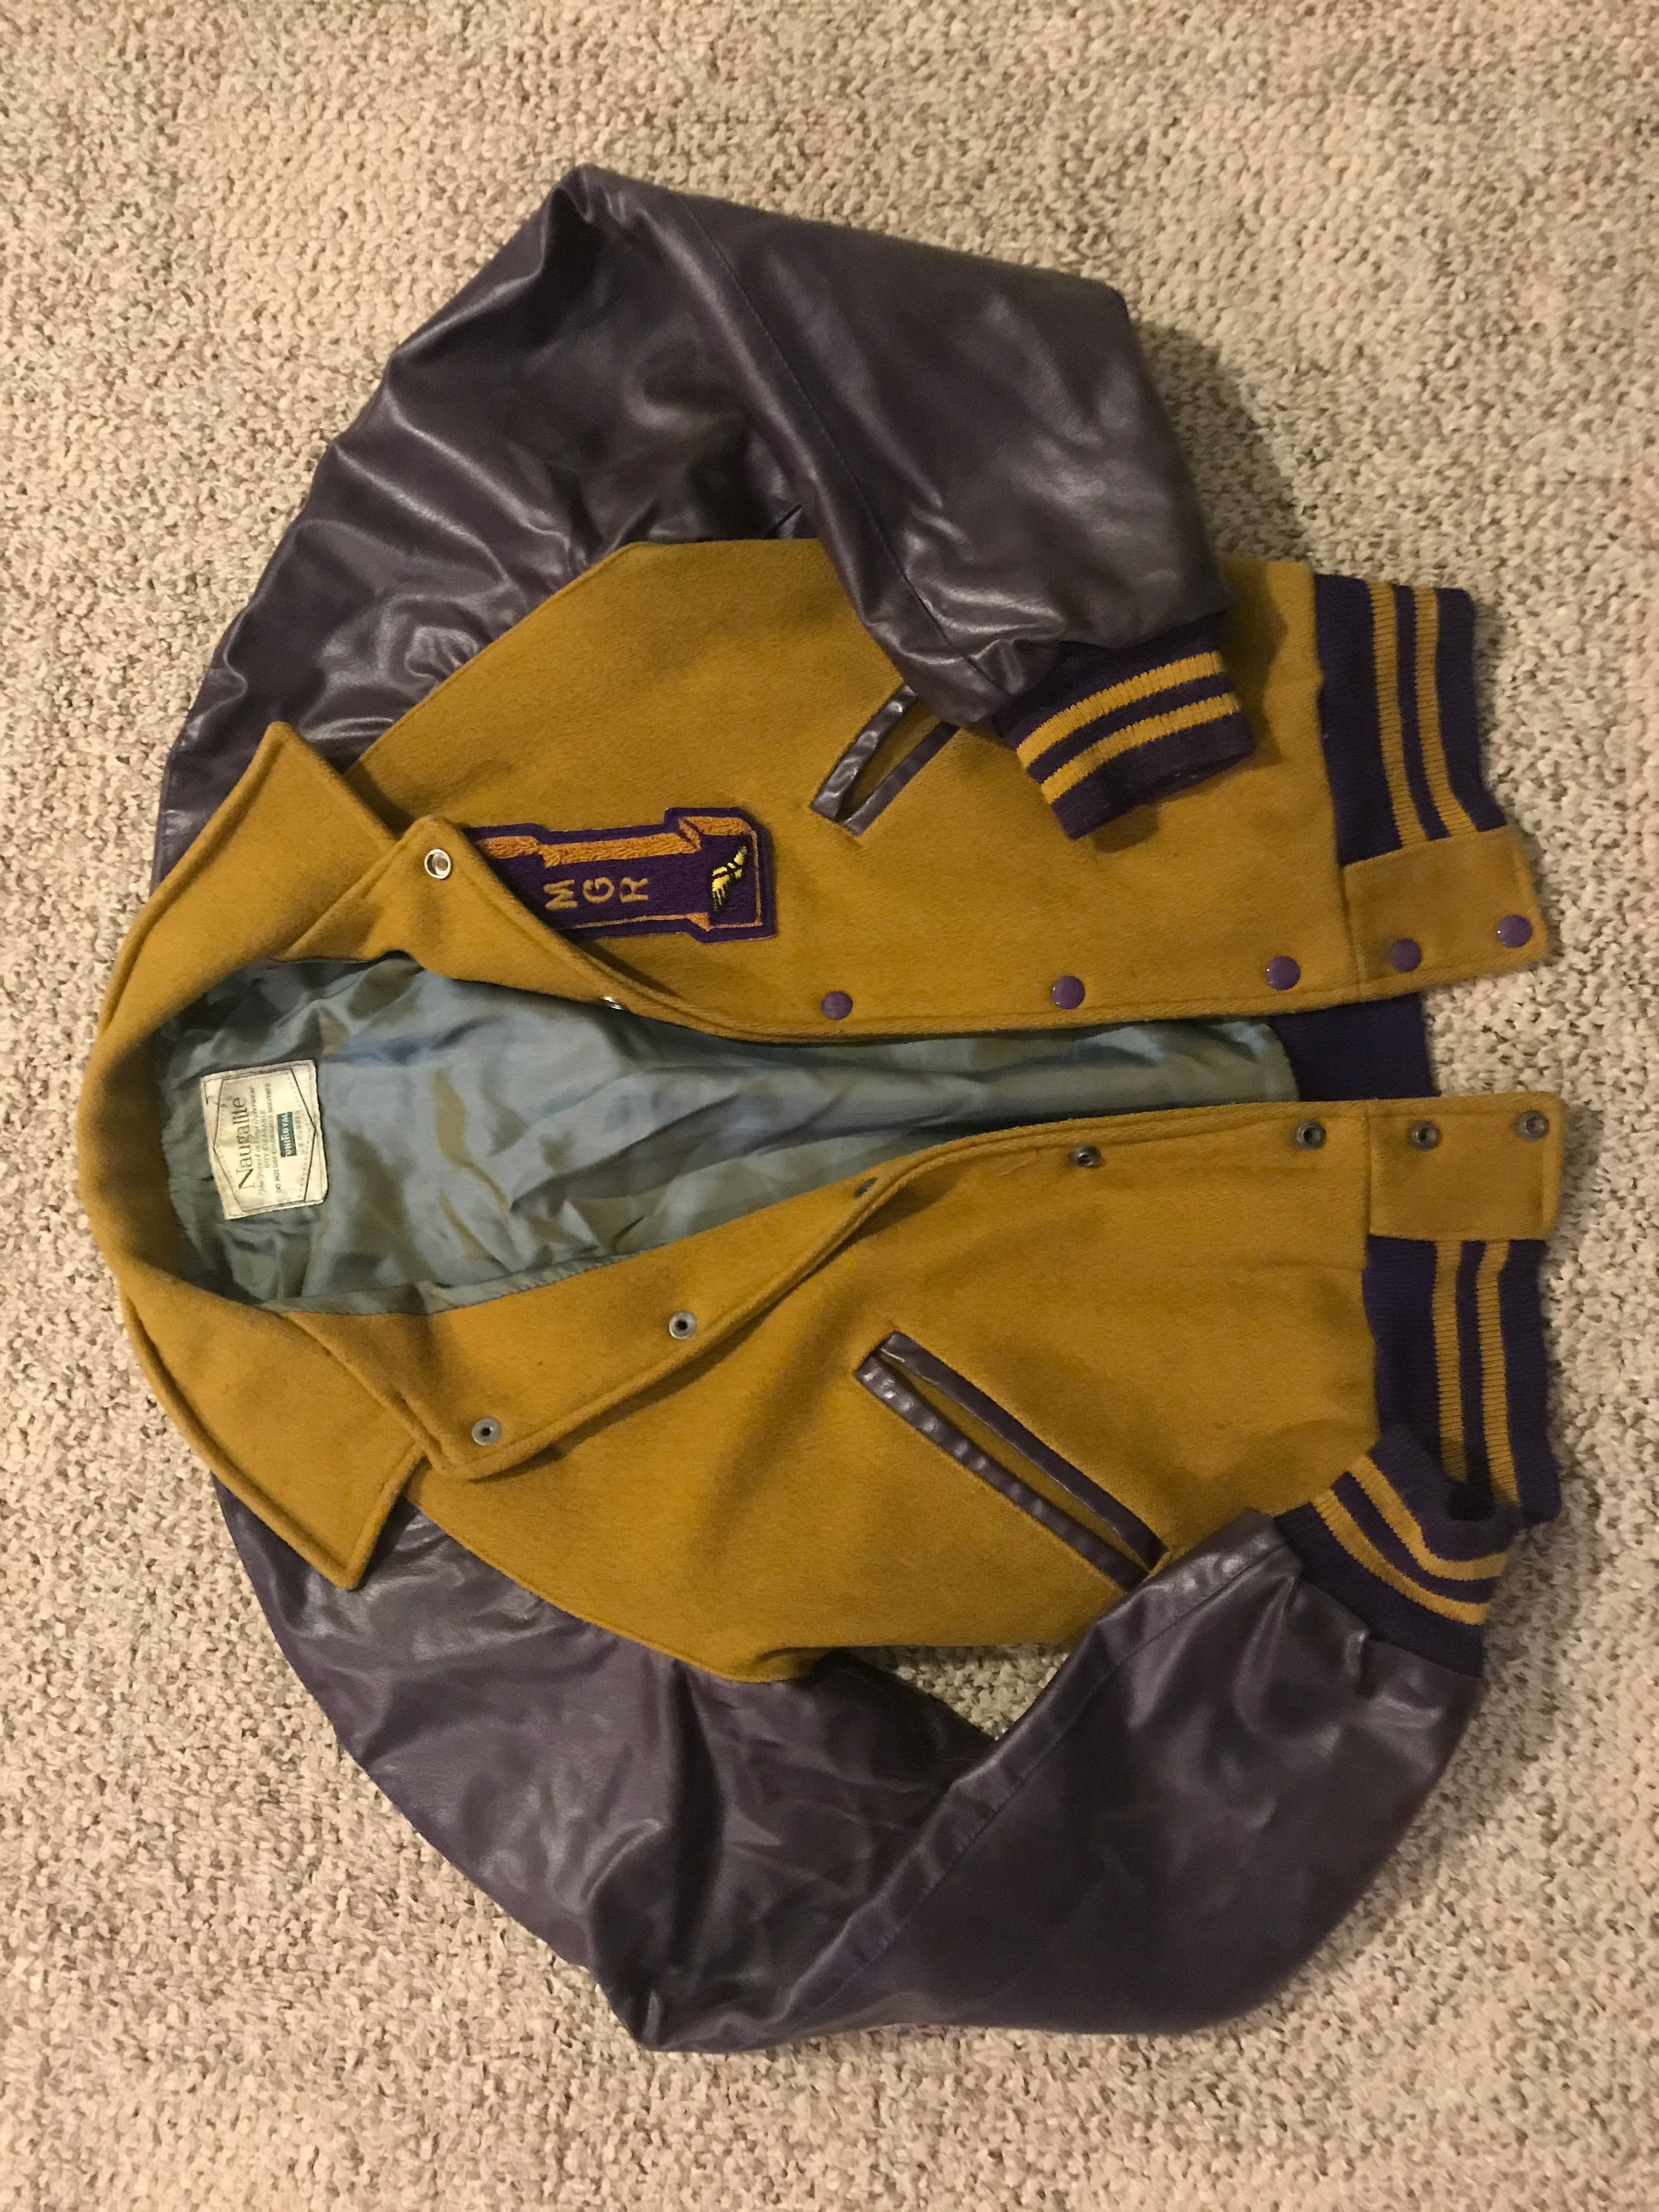 $15 vintage Purple and gold letterman jacket - GREAT CONDITION! (featured in Dawin's